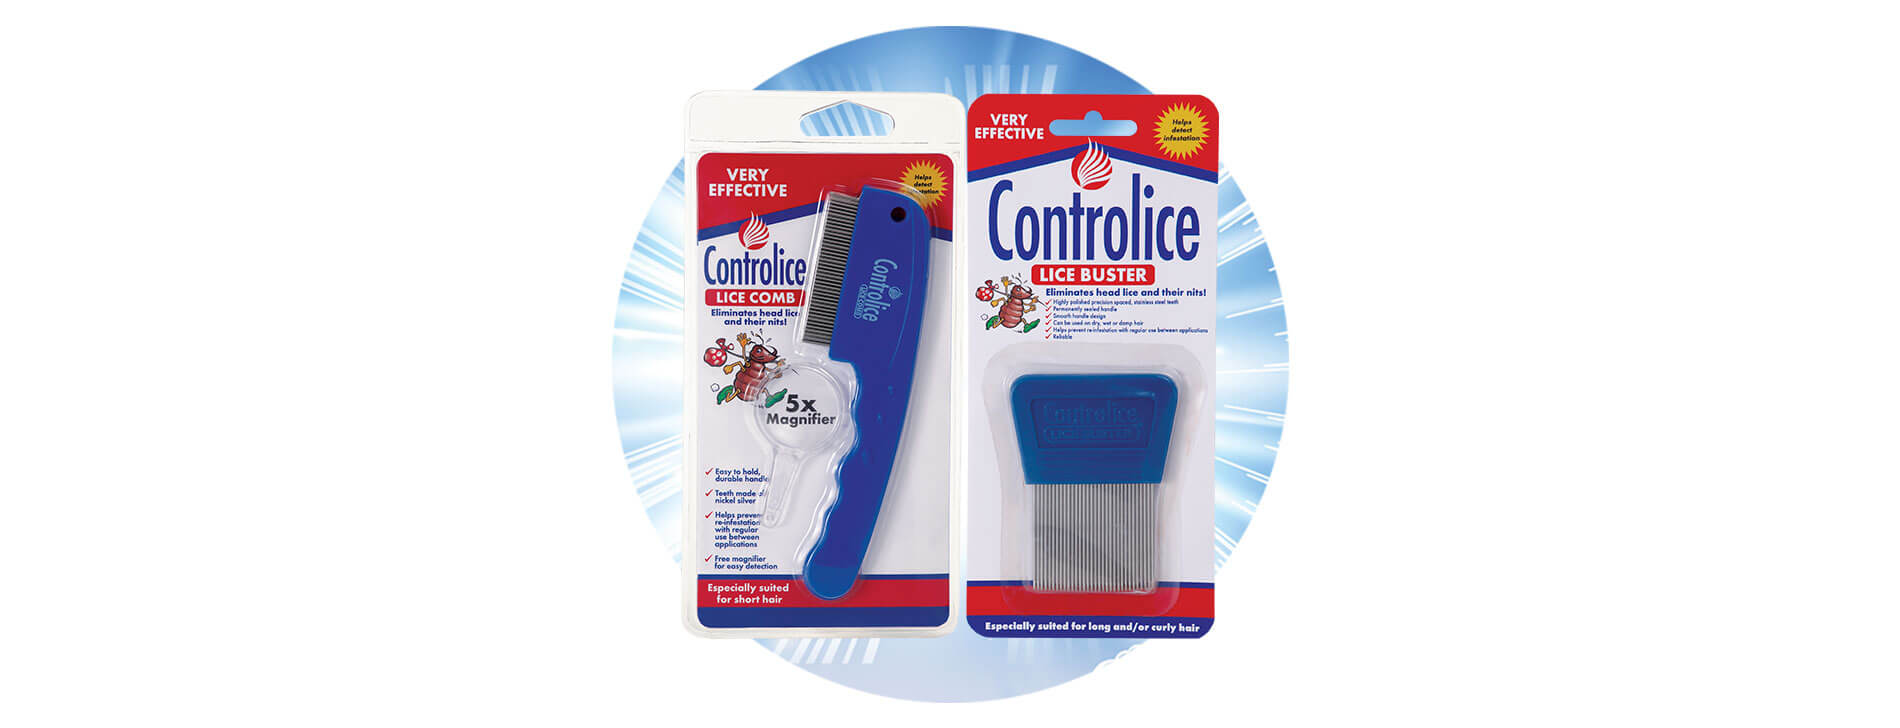 Controlice_Combs